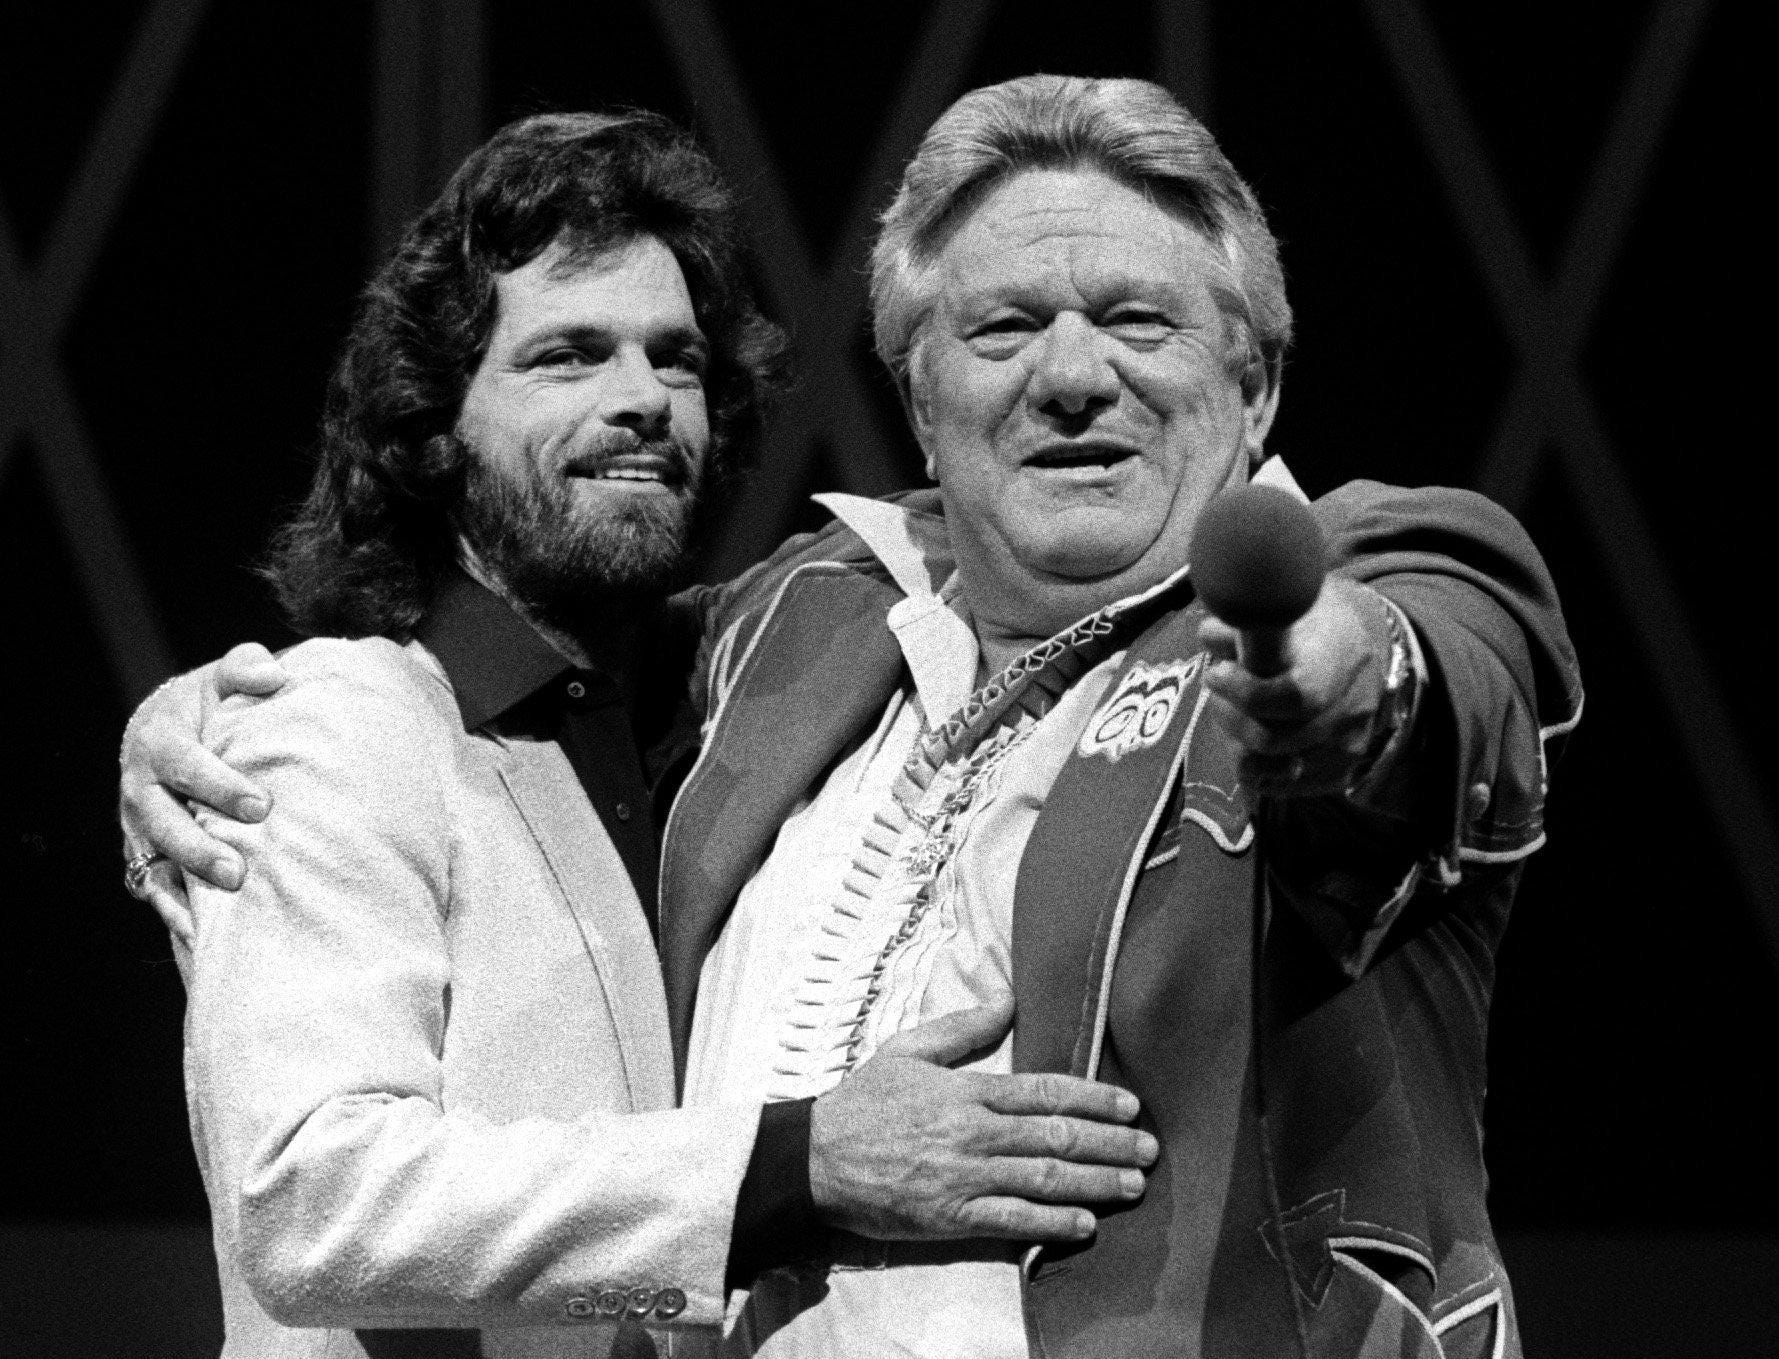 Humorist Jerry Clower (right) introduces B.J. Thomas as a member of the Grand Ole Opry on Aug. 7, 1981.